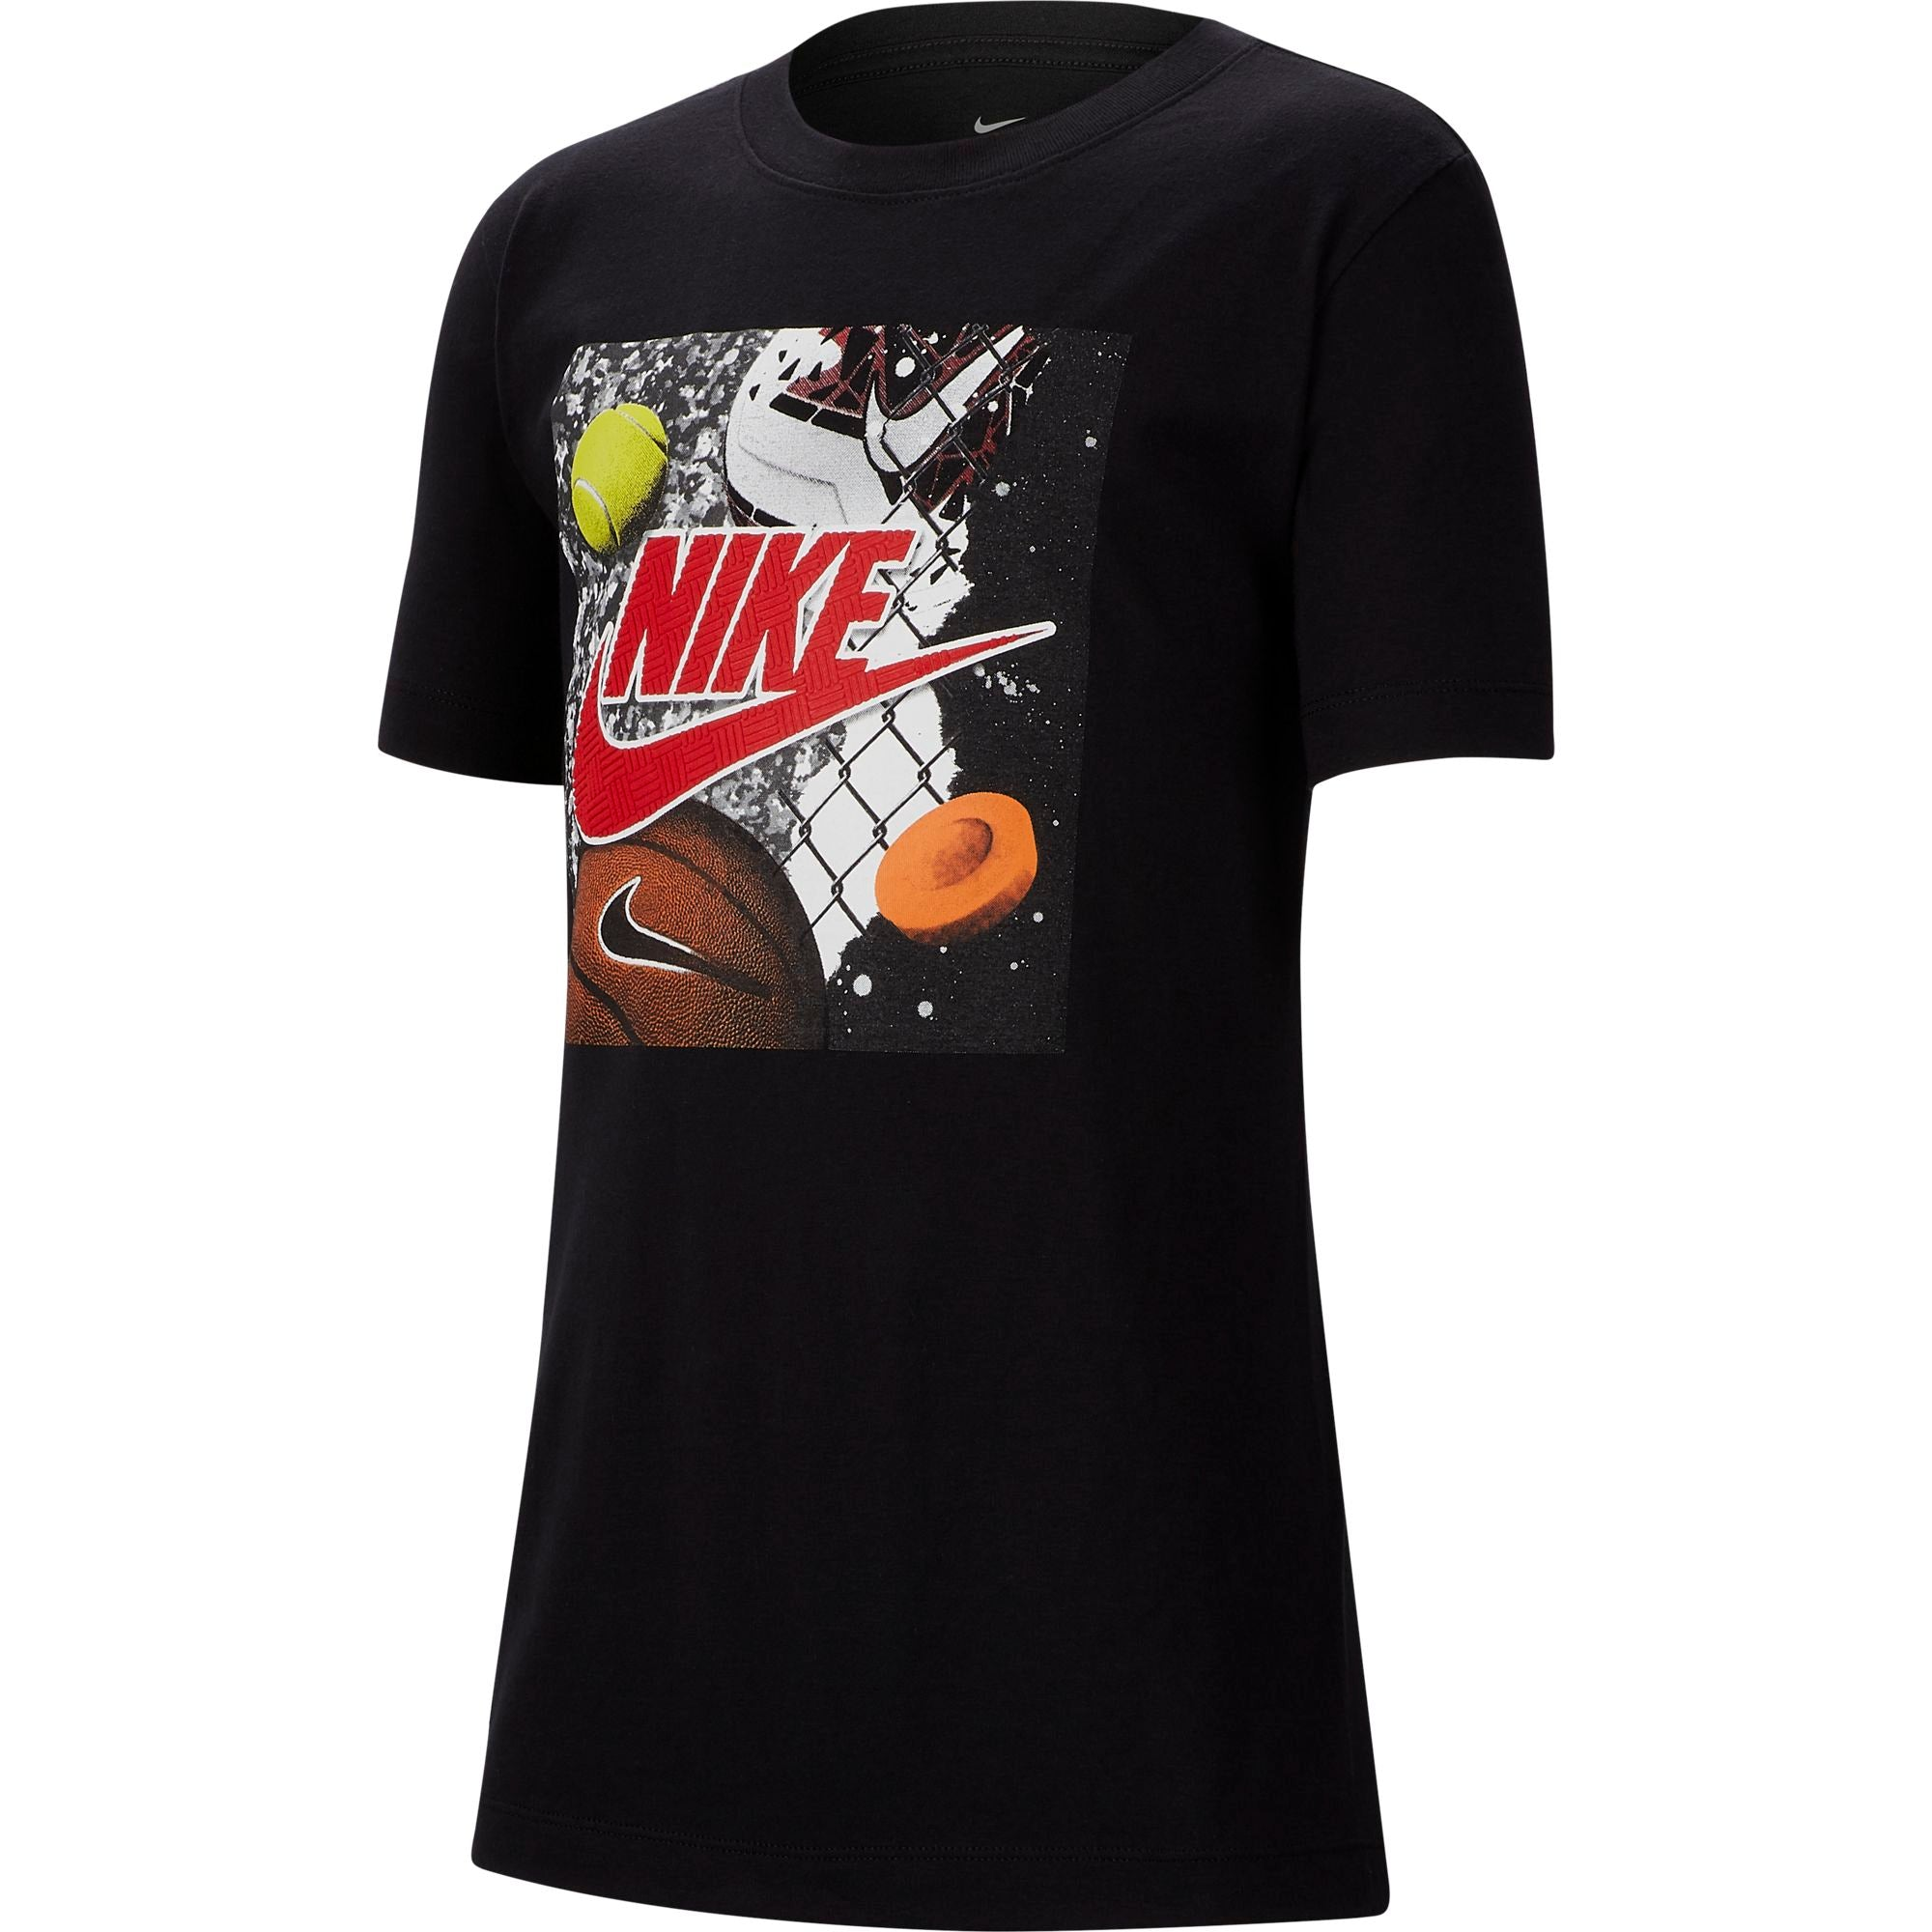 Nike Kids Sportswear Playground Graphic Tee - NK-CT2634-010